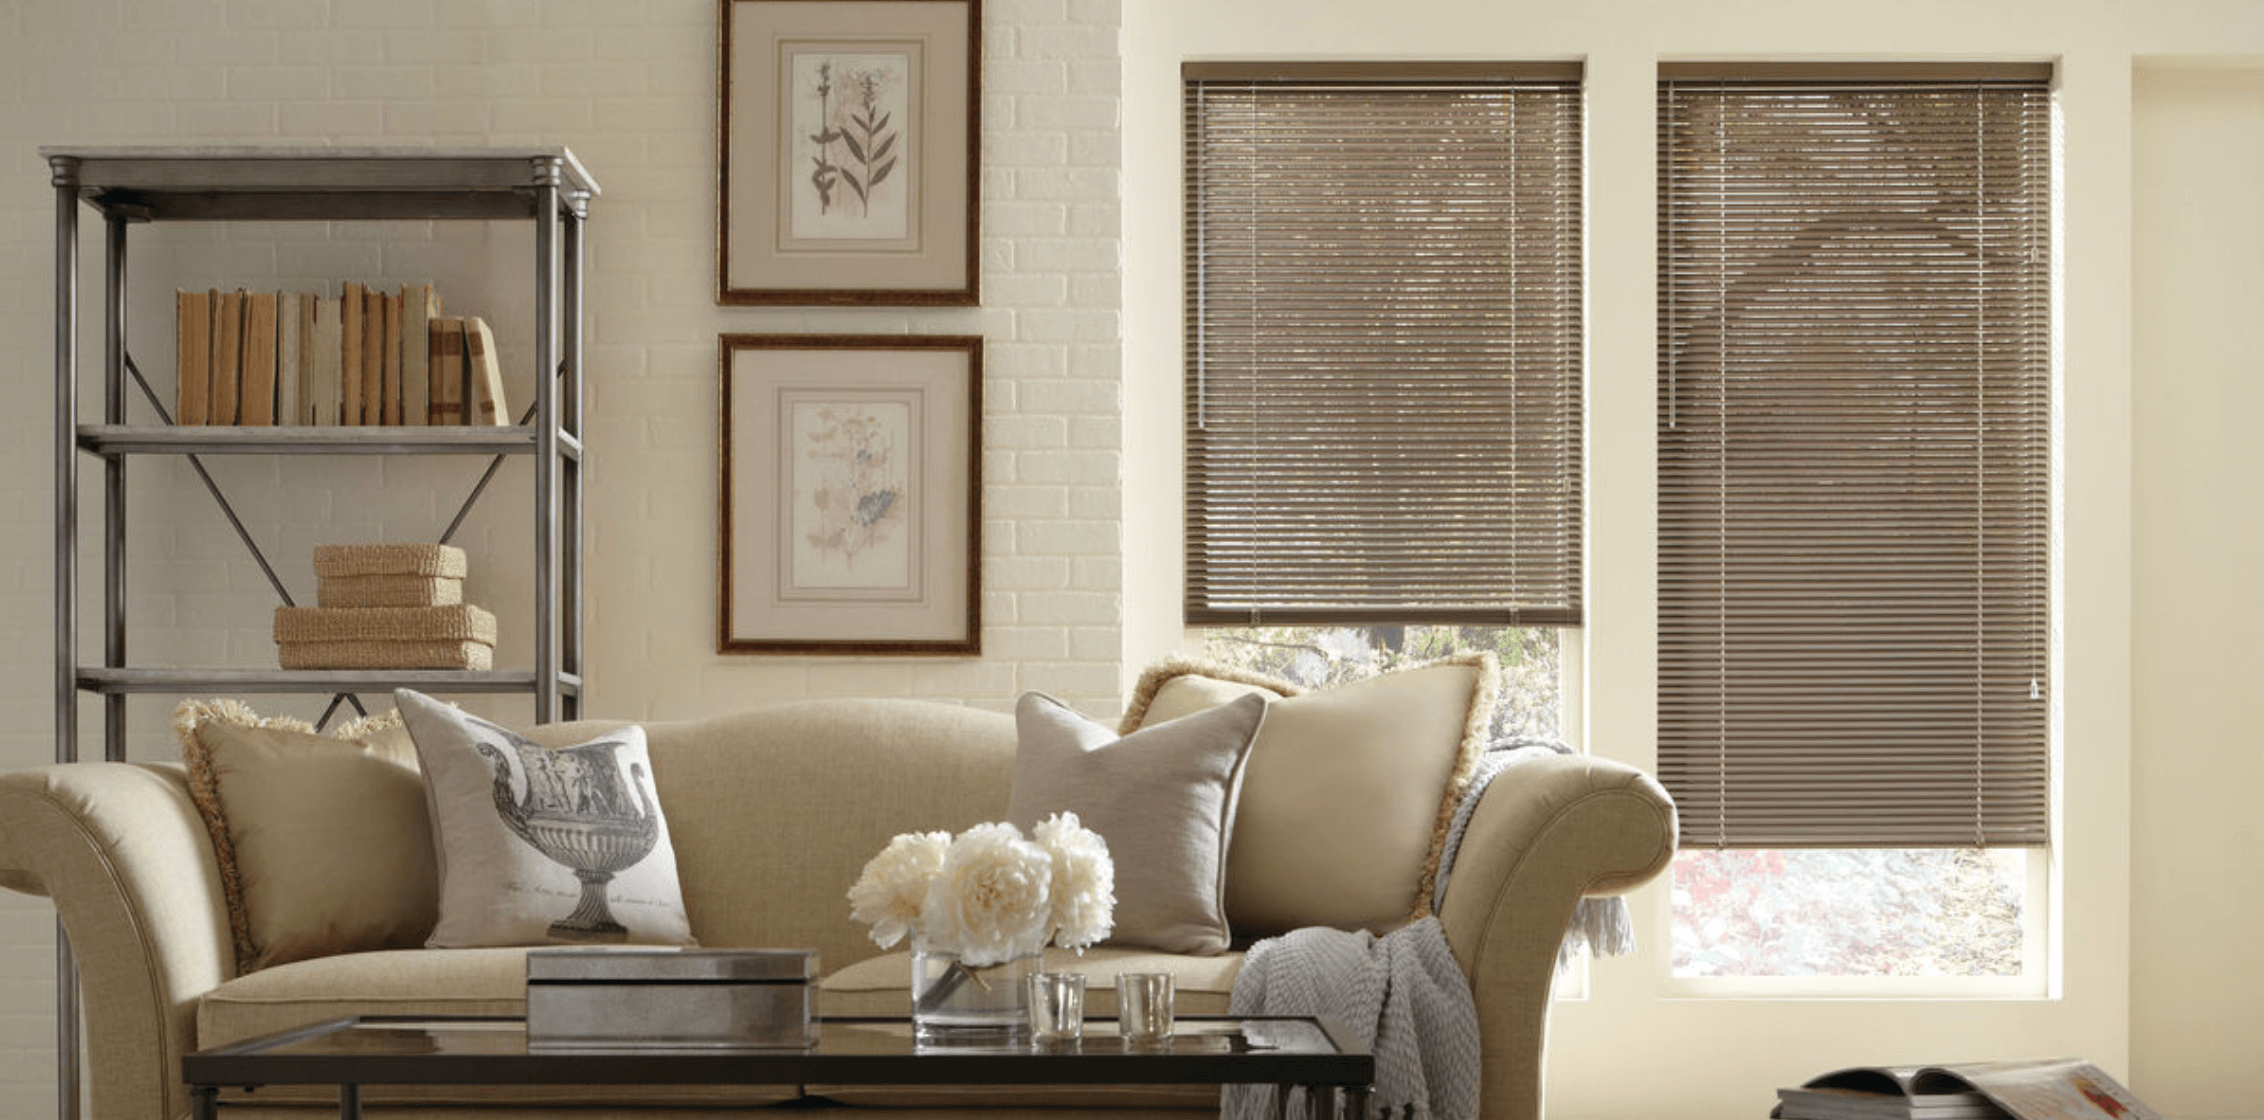 Home Window Treatments that Offer Rustic Decor in Charlotte, North Carolina (NC) like Custom Blinds